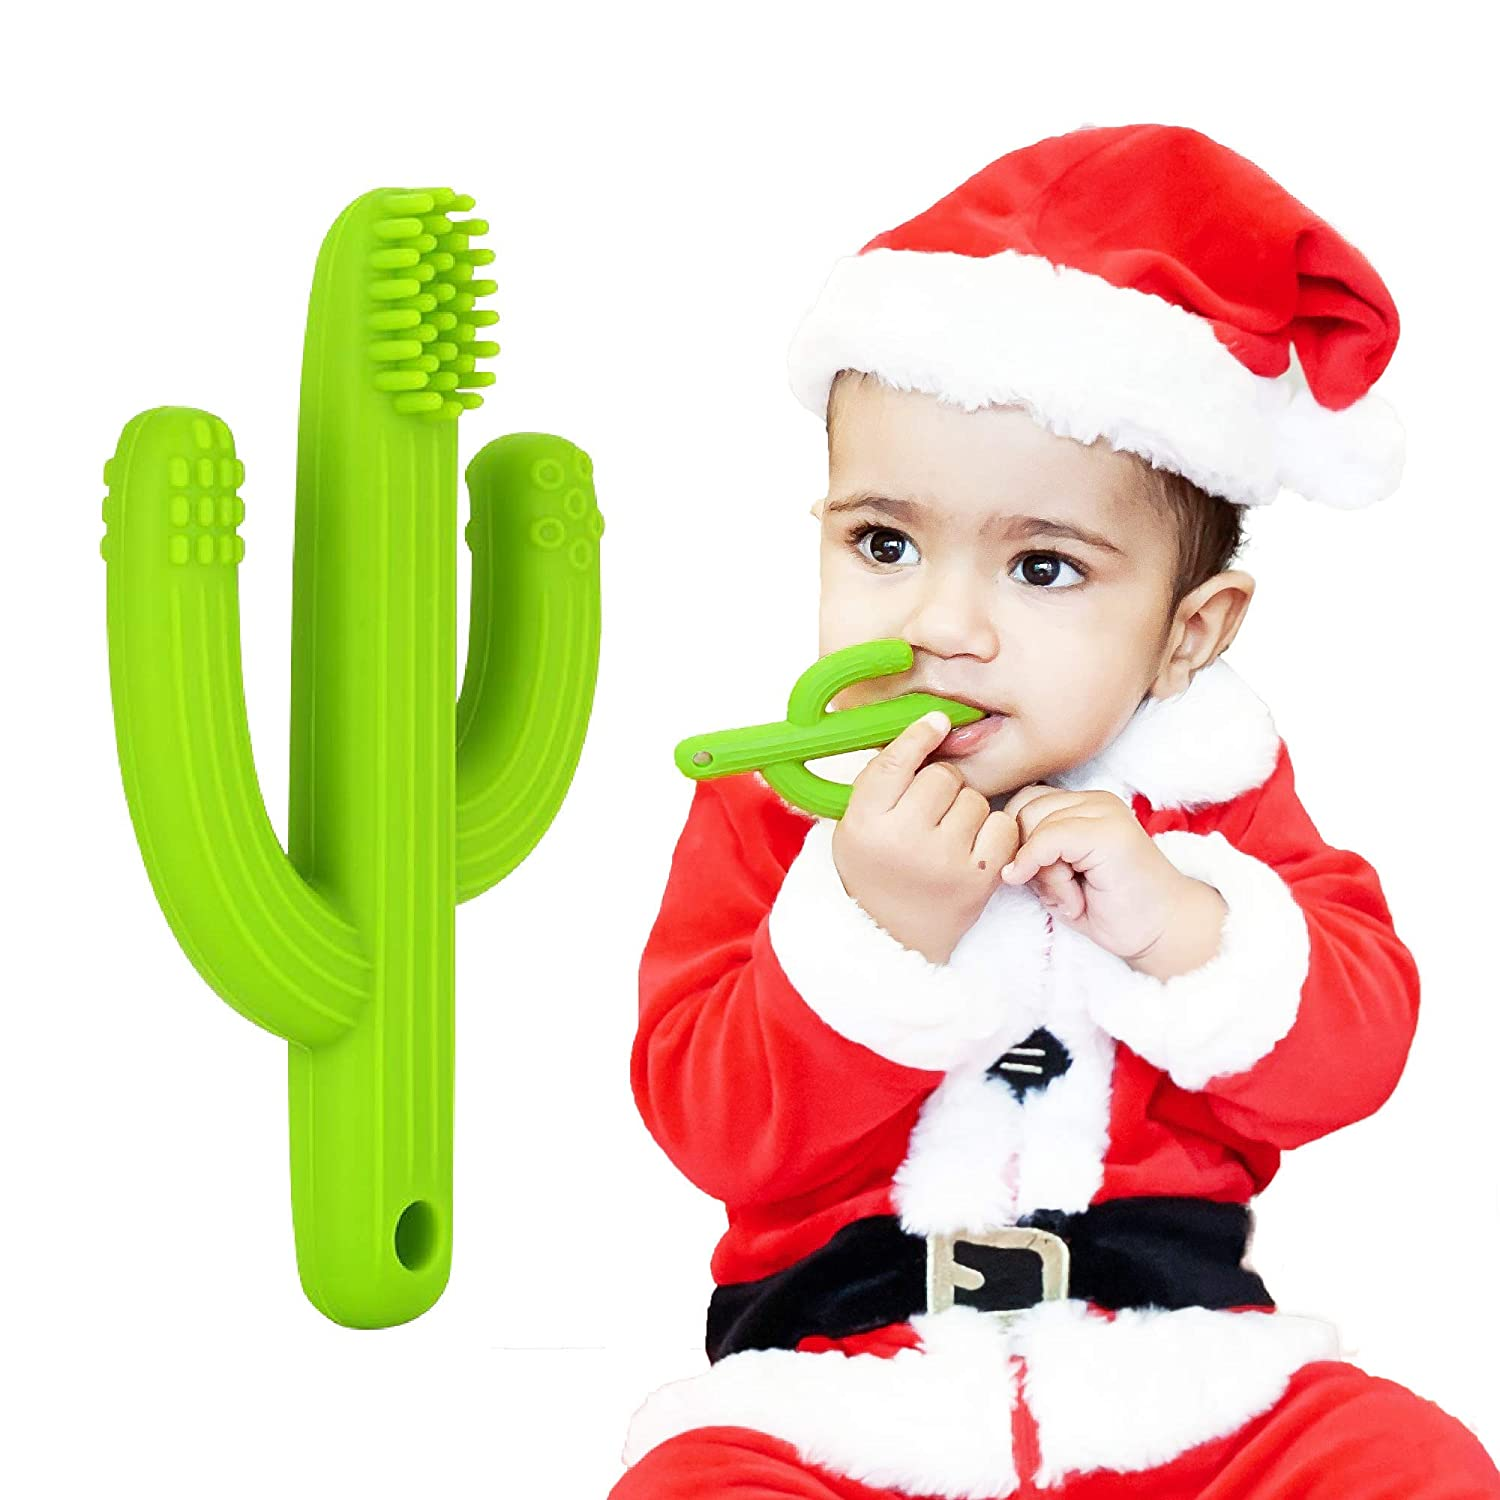 baby in santa outfit with cactus shaped teething toothbrush